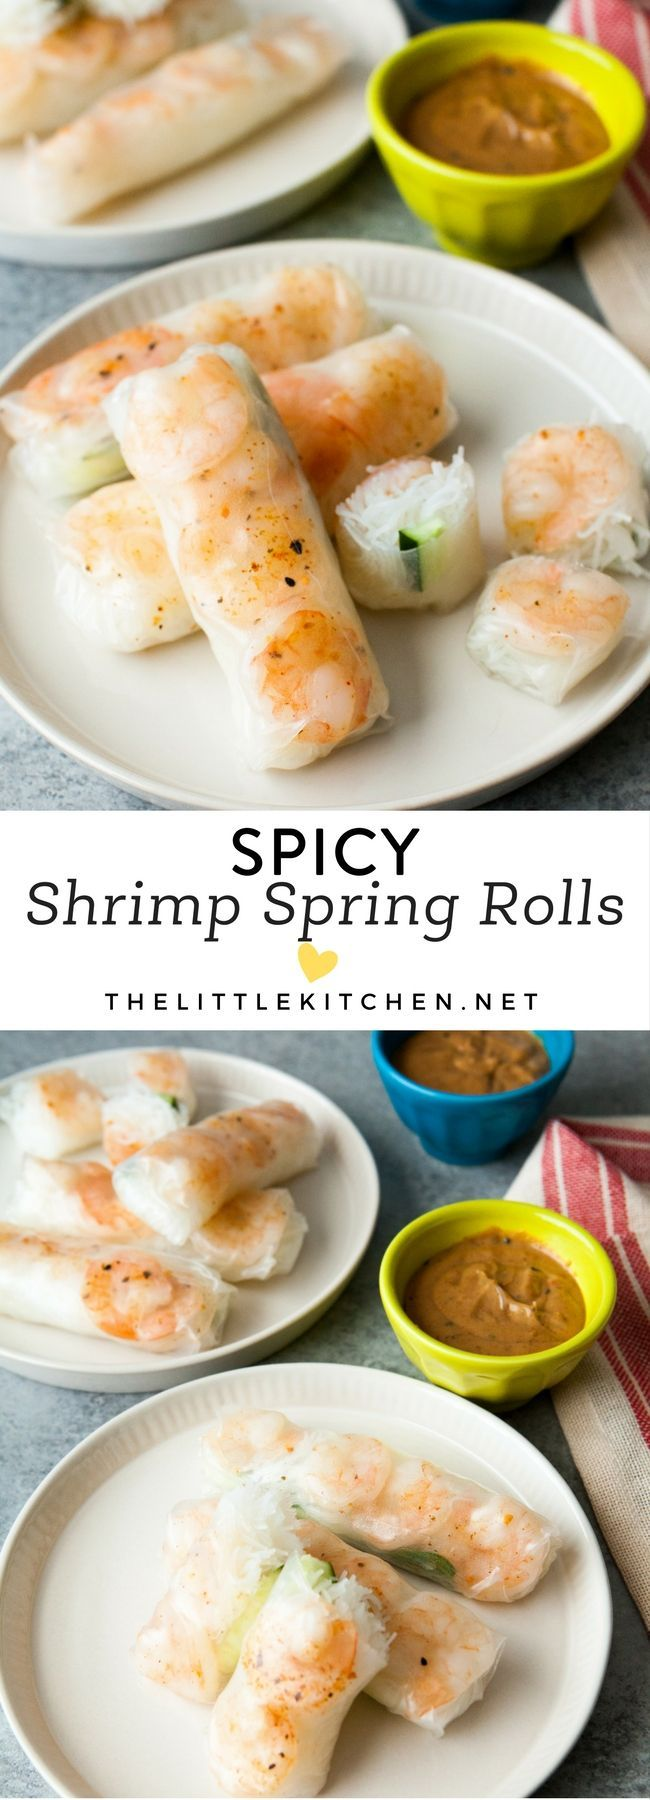 Spicy Shrimp Spring Rolls from thelittlekitchen.net